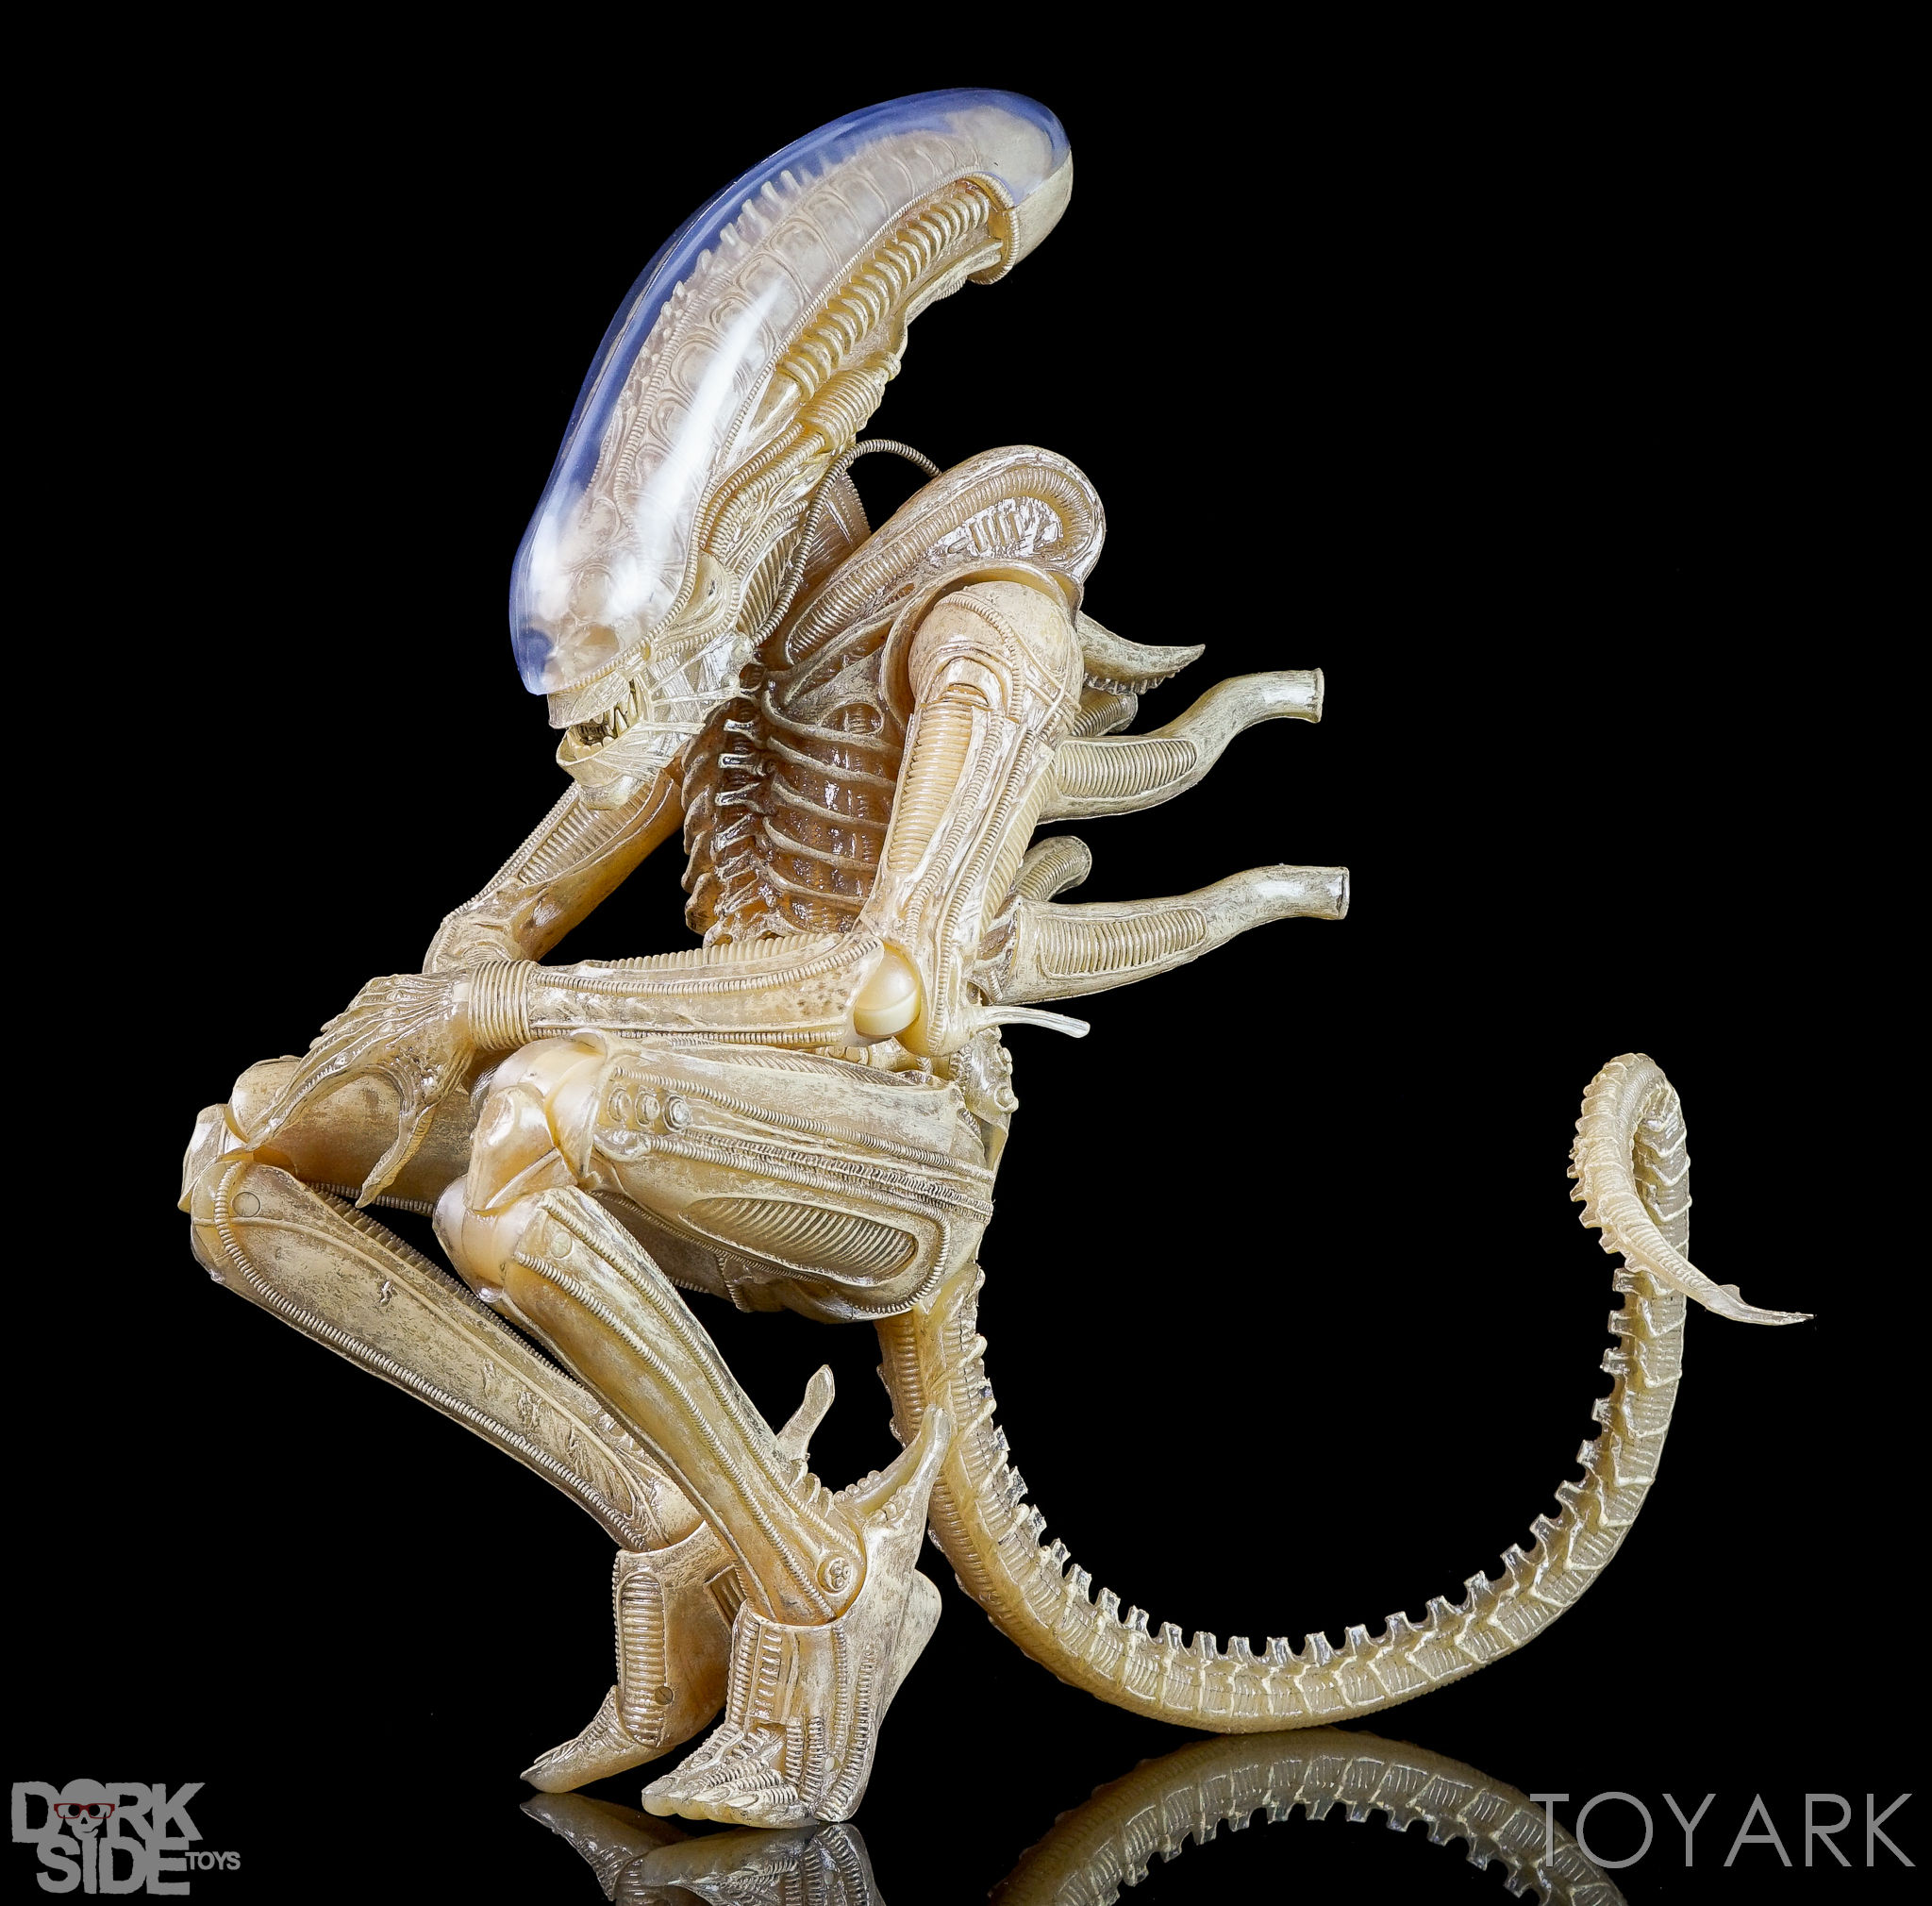 http://news.toyark.com/wp-content/uploads/sites/4/2016/10/NECA-Quarter-Scale-Concept-Alien-039.jpg